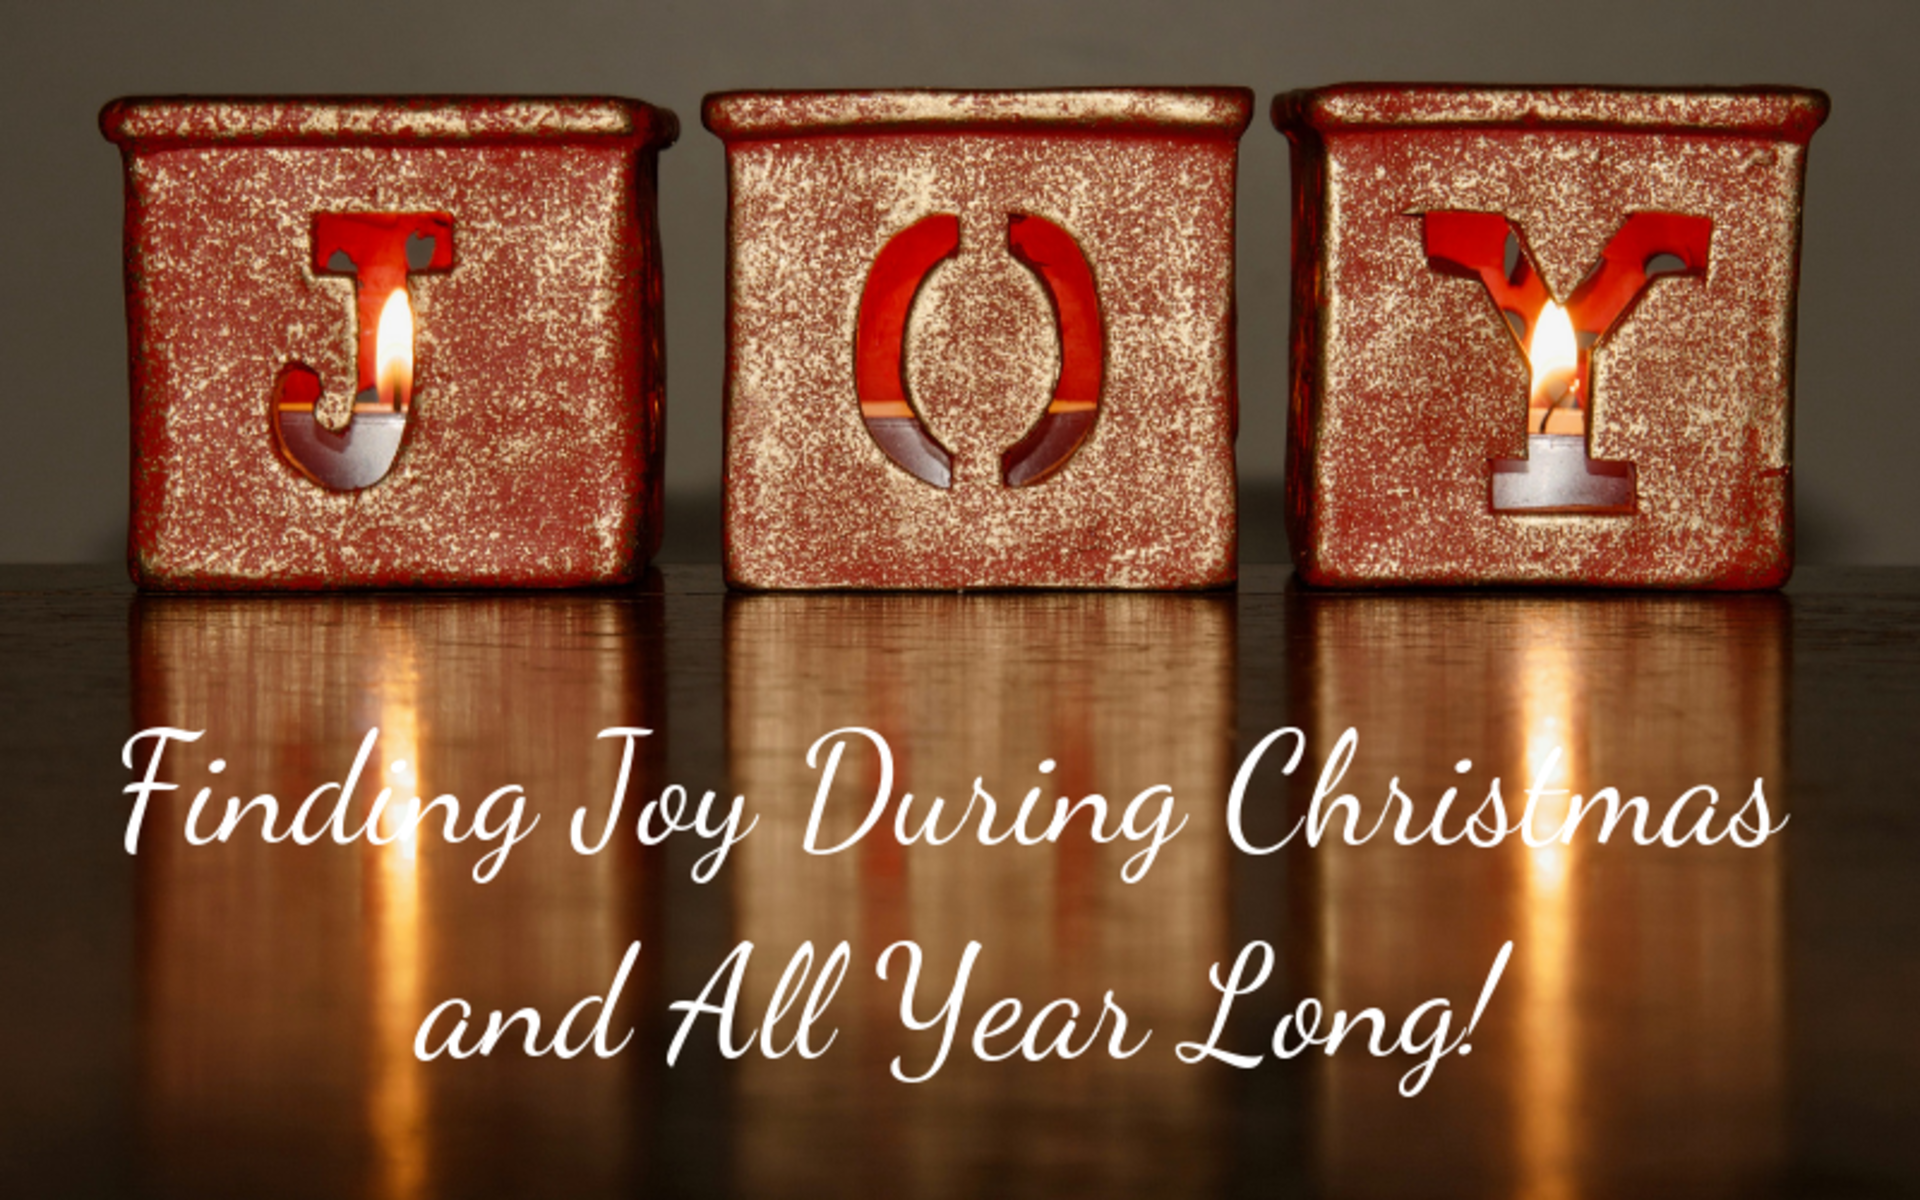 Finding Joy During Christmas and All Year Long!